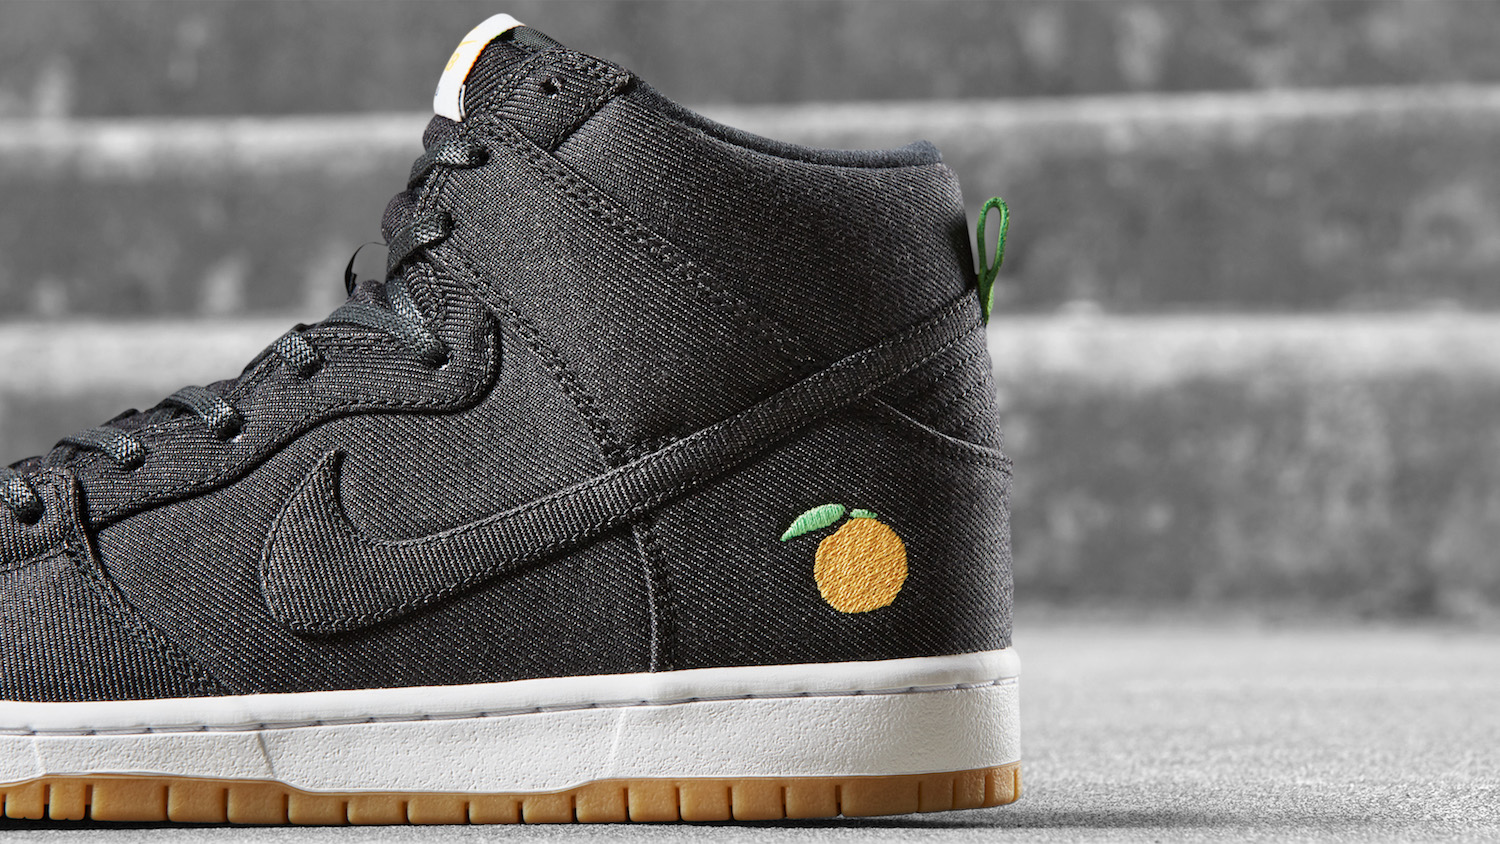 Nike SB Dunk High Pro Momofuko david chang 02